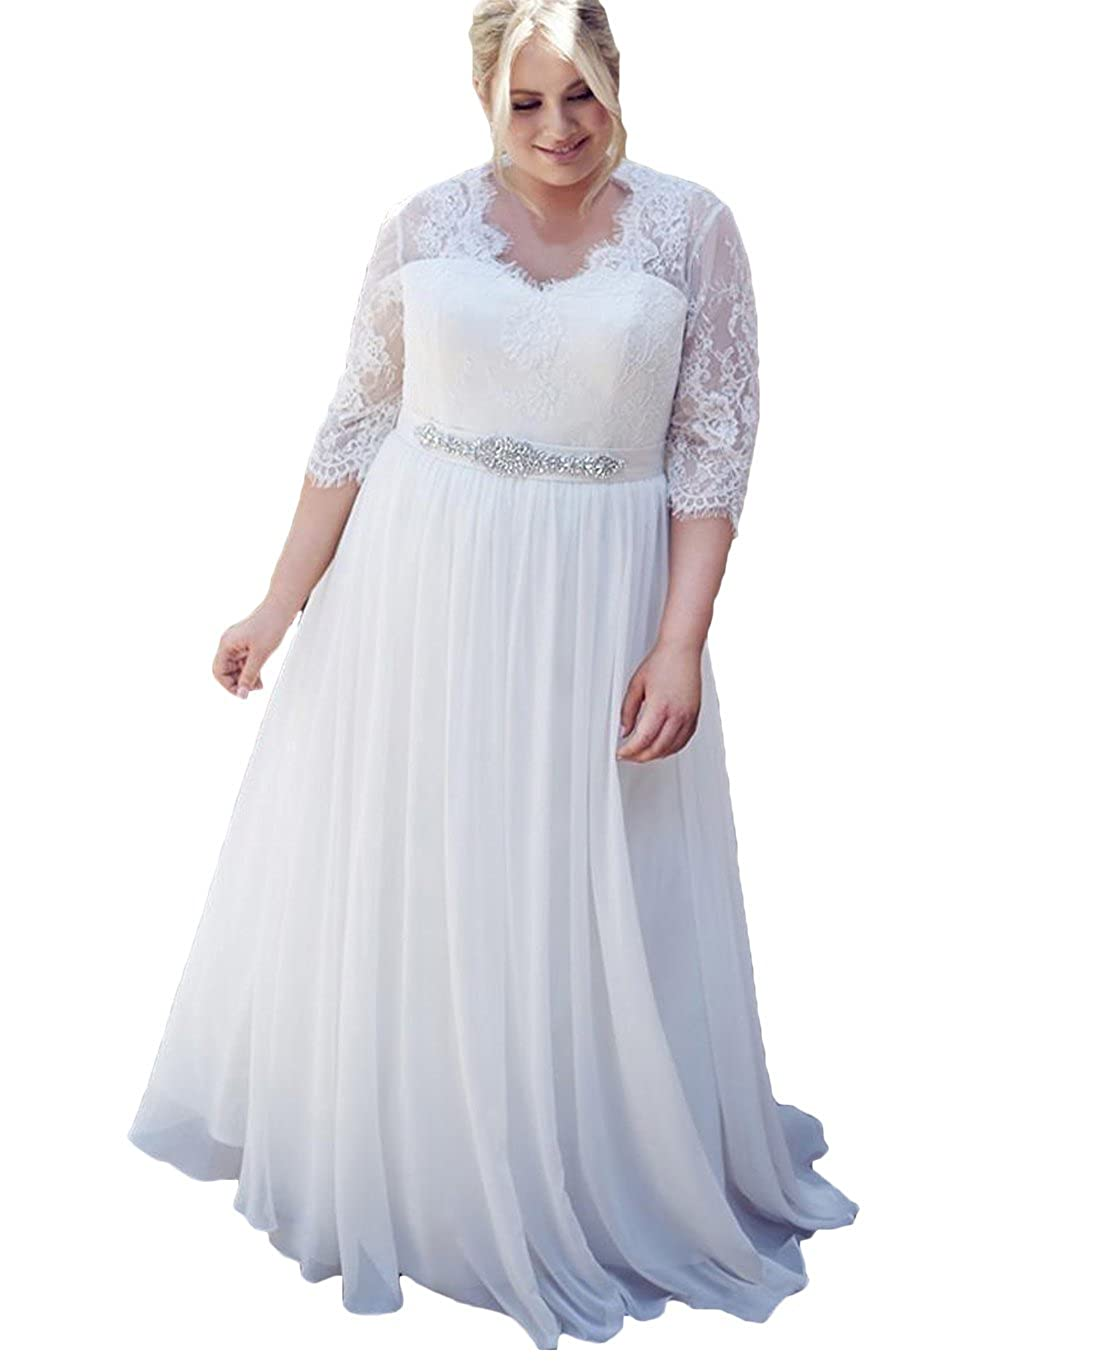 Dumoo Womens Plus Size Chiffon Lace Wedding Dress With Long Sleeves